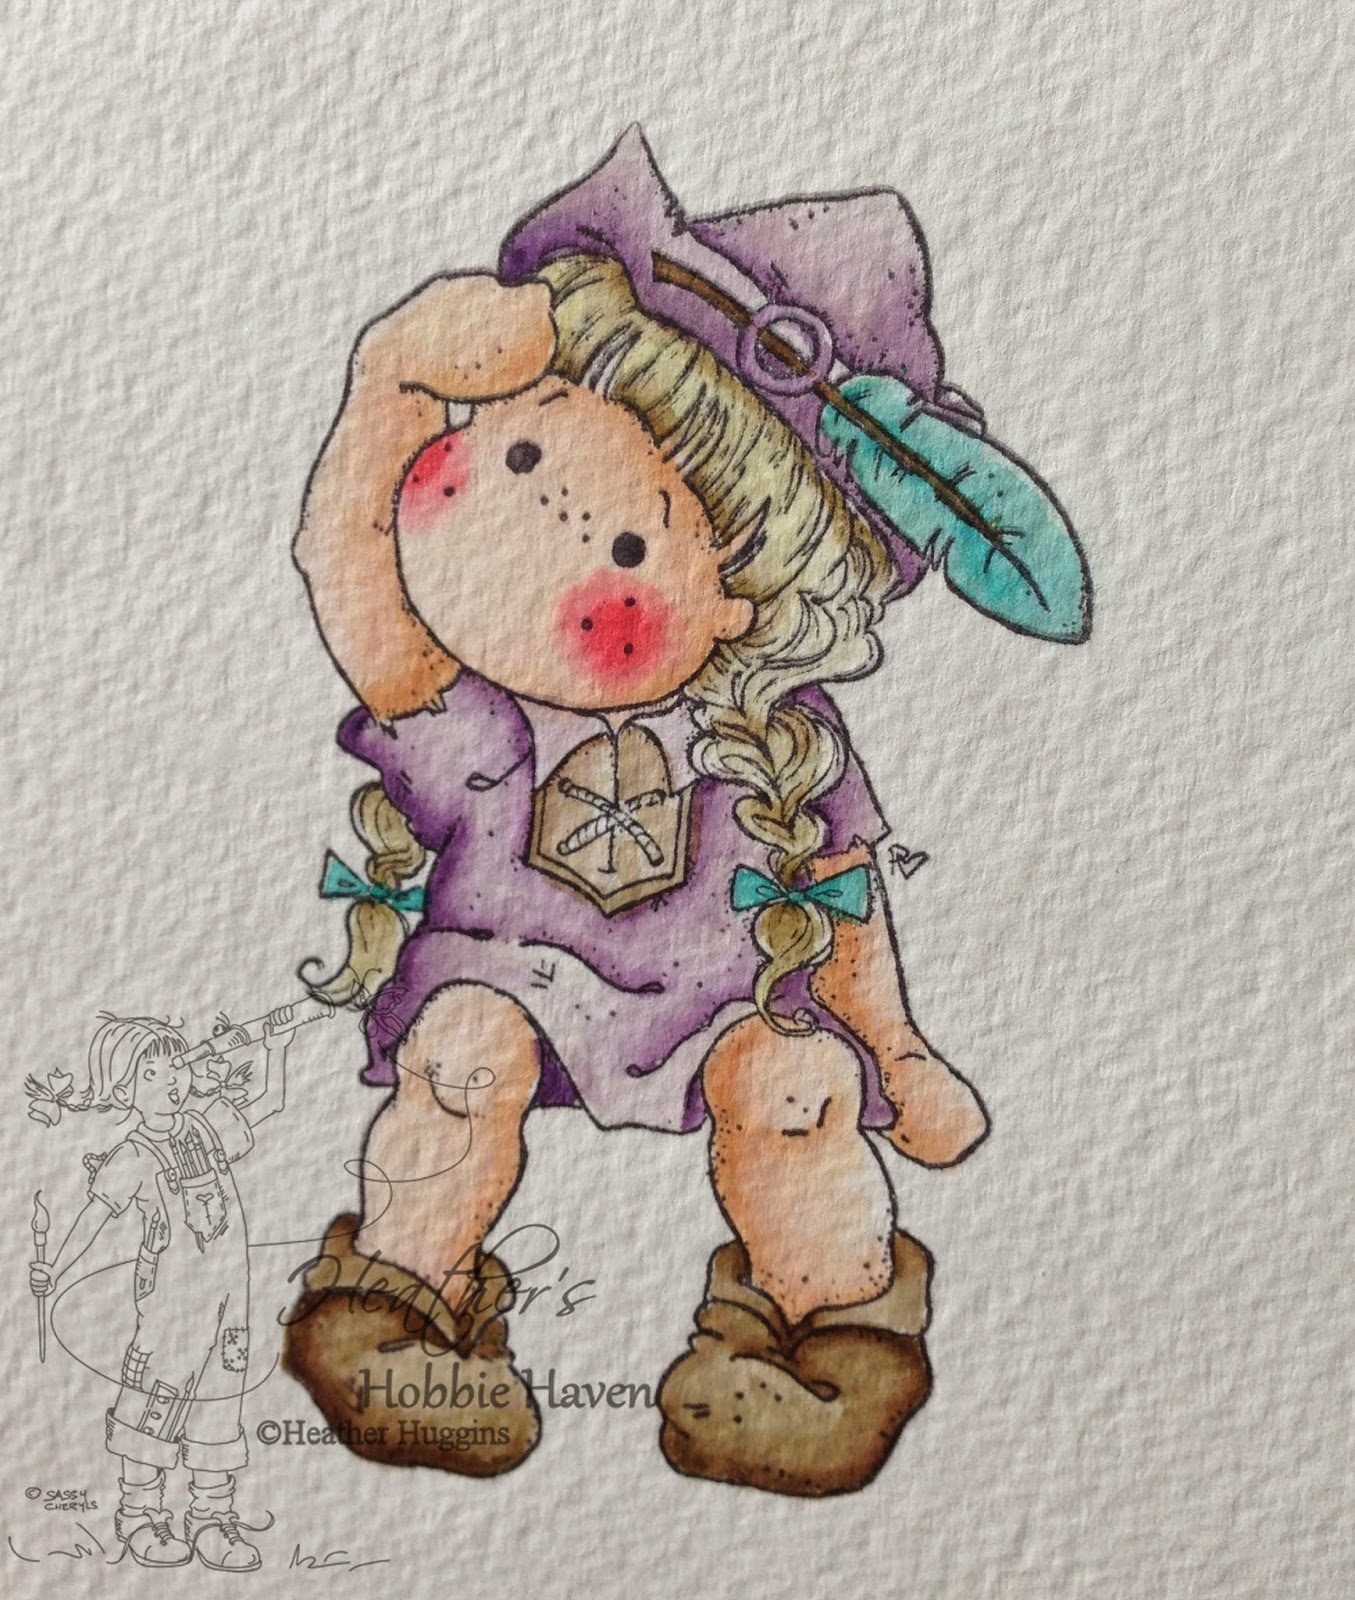 Heather's Hobbie Haven - Water Coloring Beanstalk Tilda